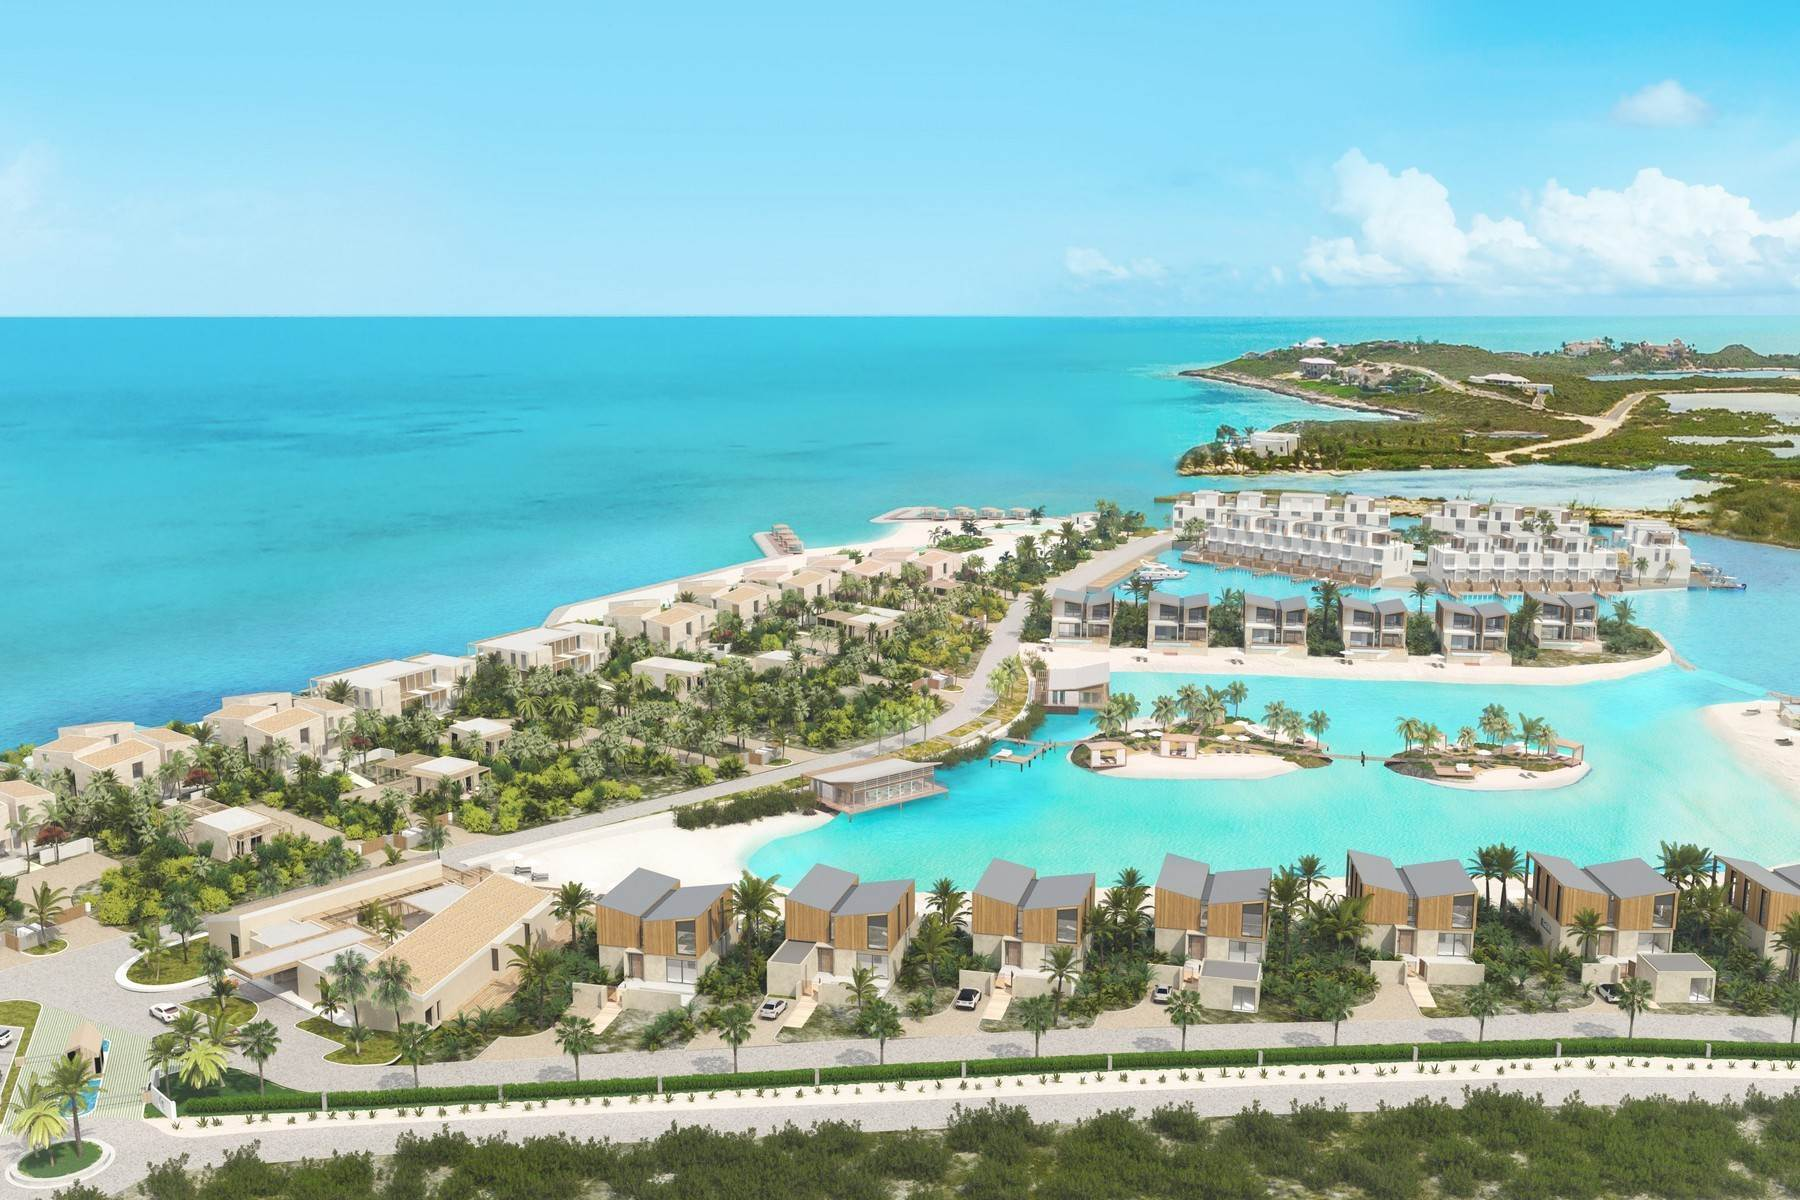 8. Single Family Homes for Sale at LONG BAY BEACH DUNE VILLA 1 AT SOUTH BANK - THE OCEAN ESTATE South Bank, Long Bay, Providenciales Turks And Caicos Islands